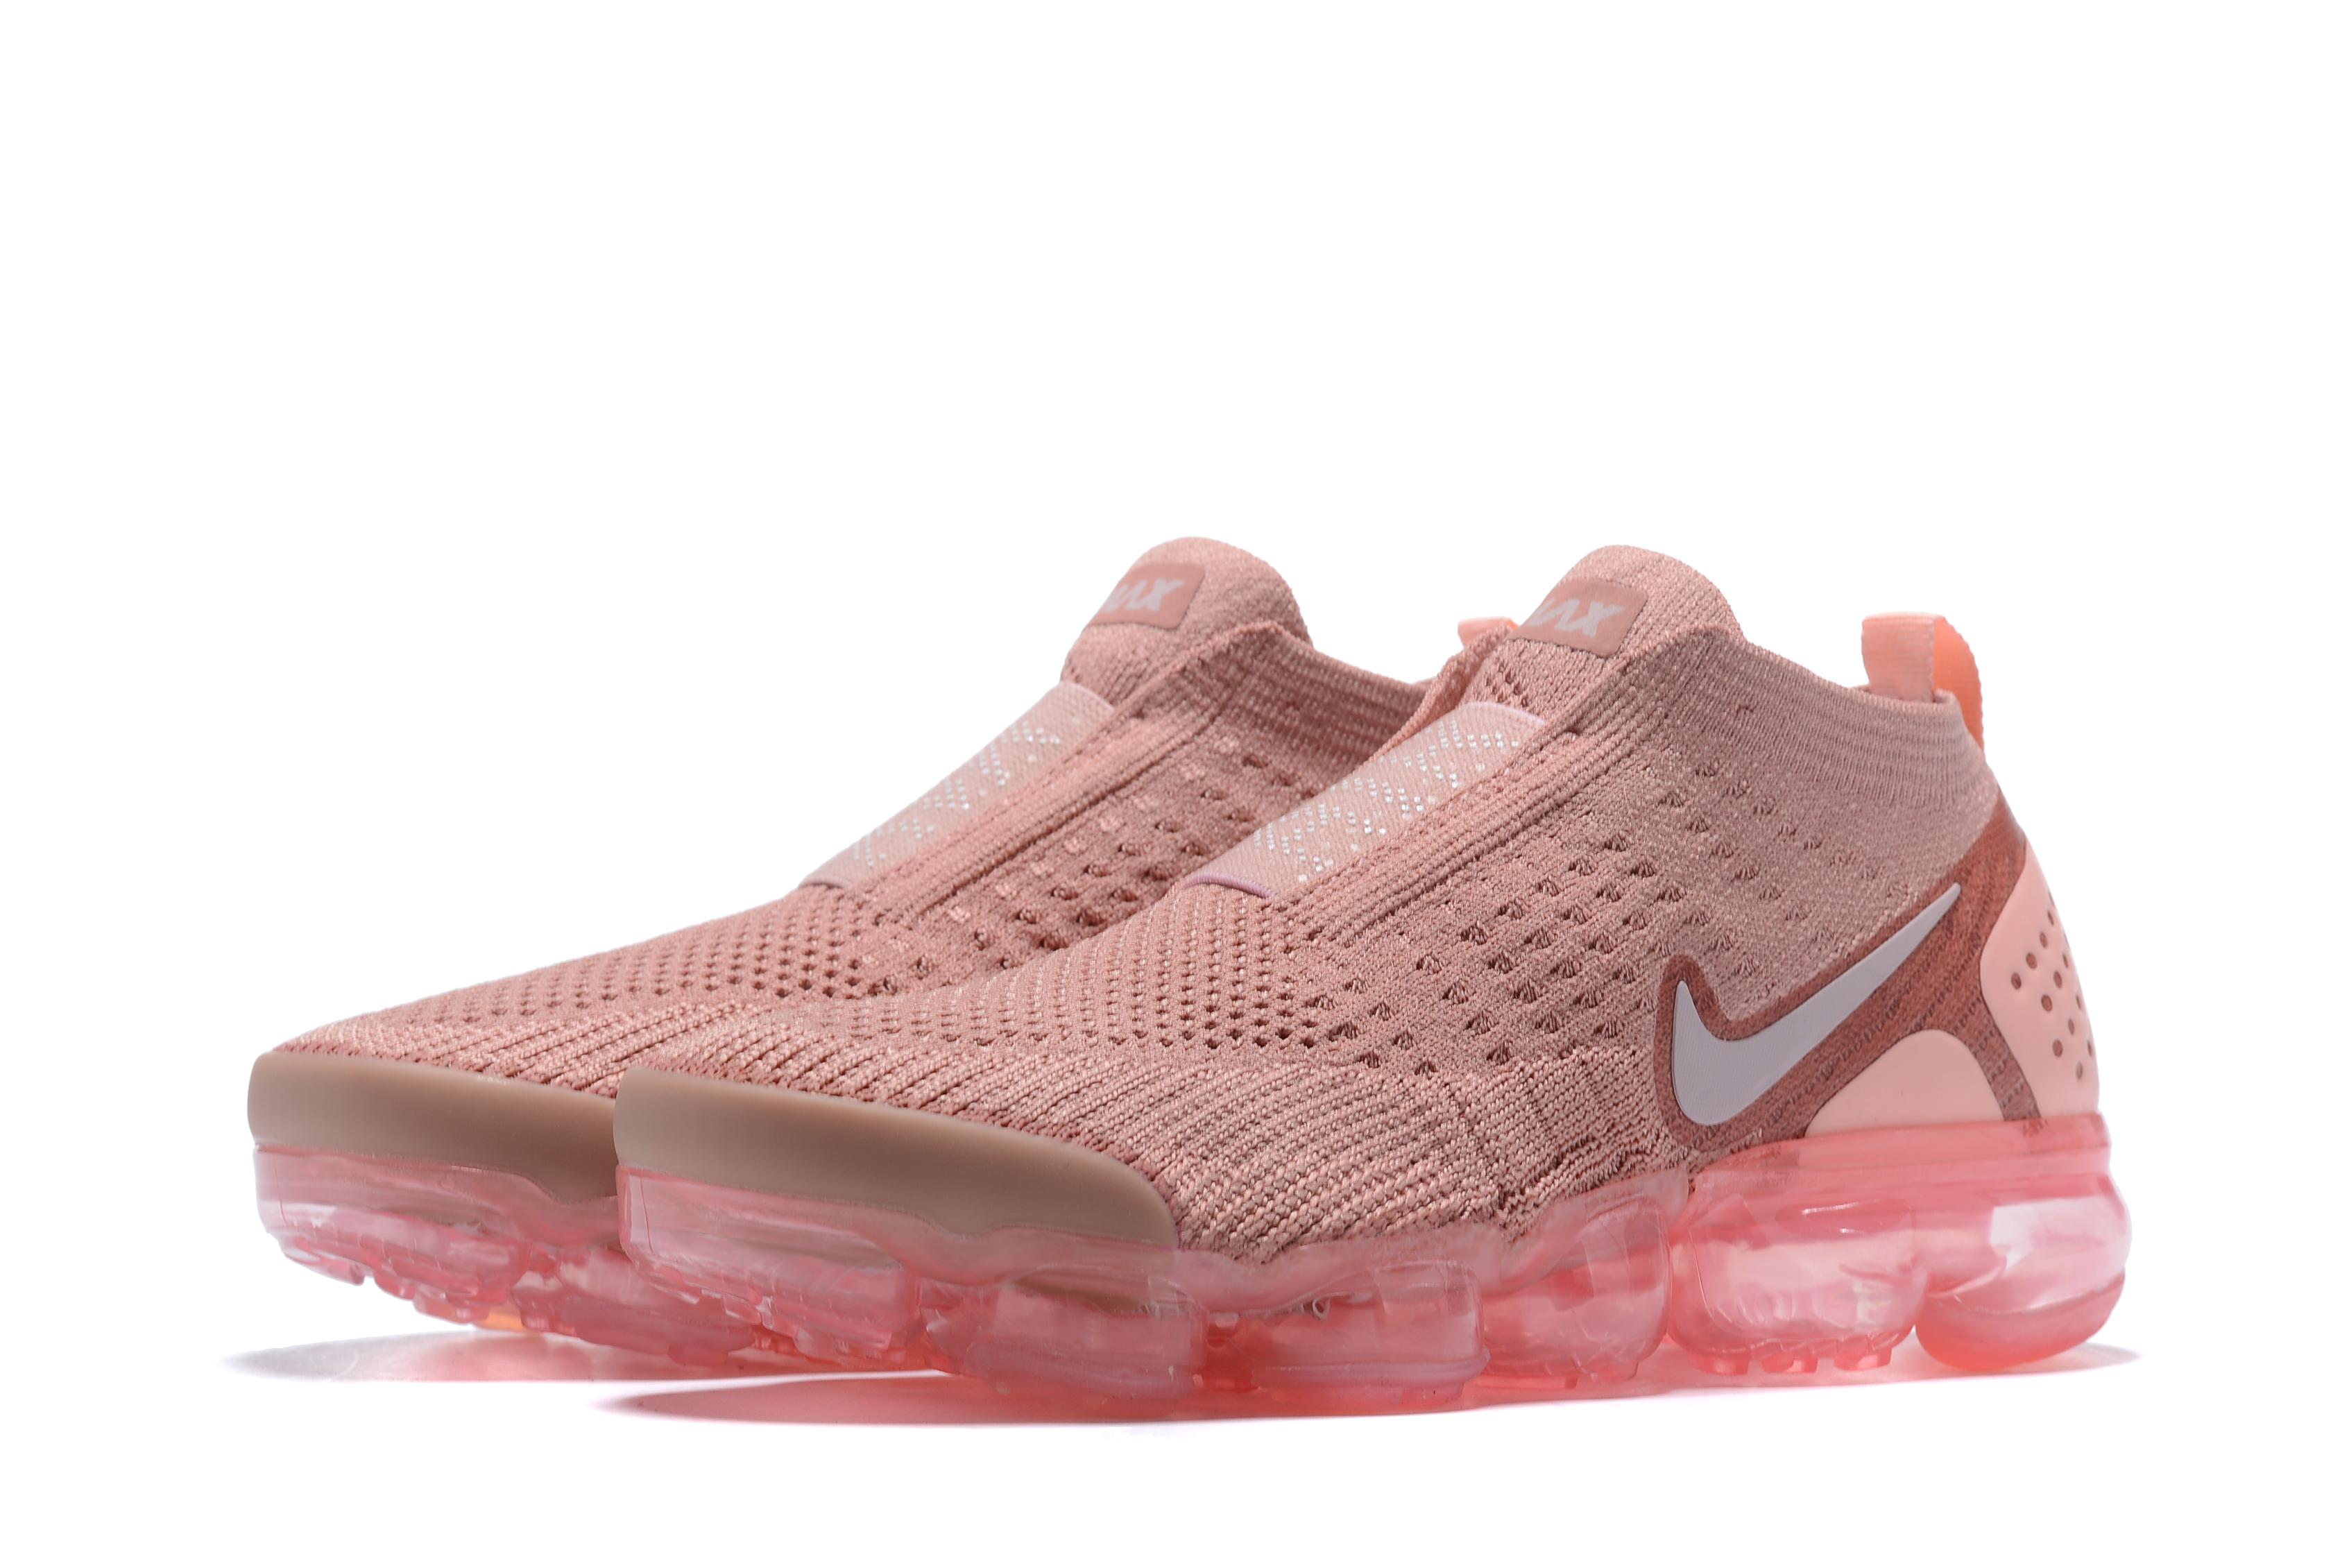 Nike Air VaporMax FK Moc Pink Running Shoes For Women